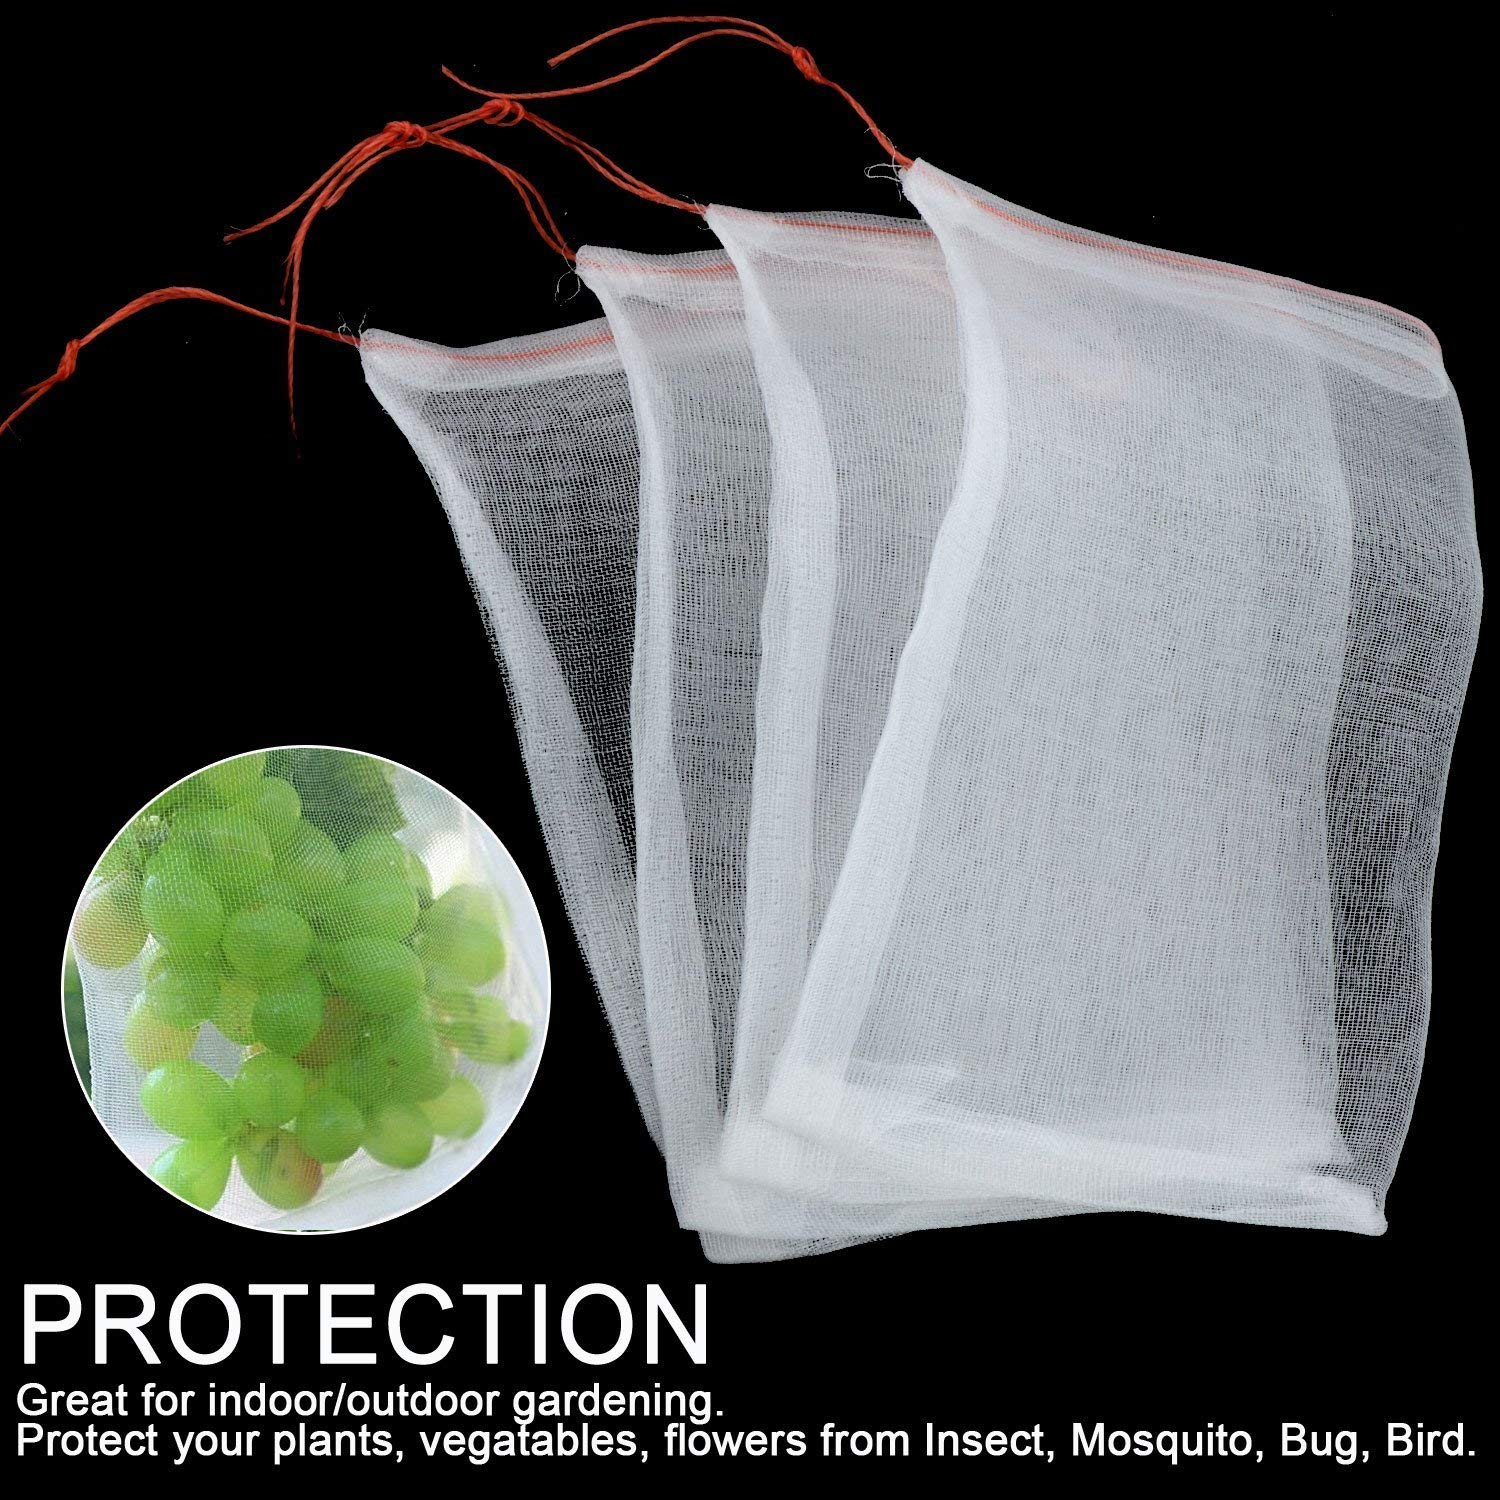 "Ecover Insect Netting Barrier Bag Bird Mosquito Net Garden Netting - Protect Plant/Flowers, 24"" x 16"", 5pcs"